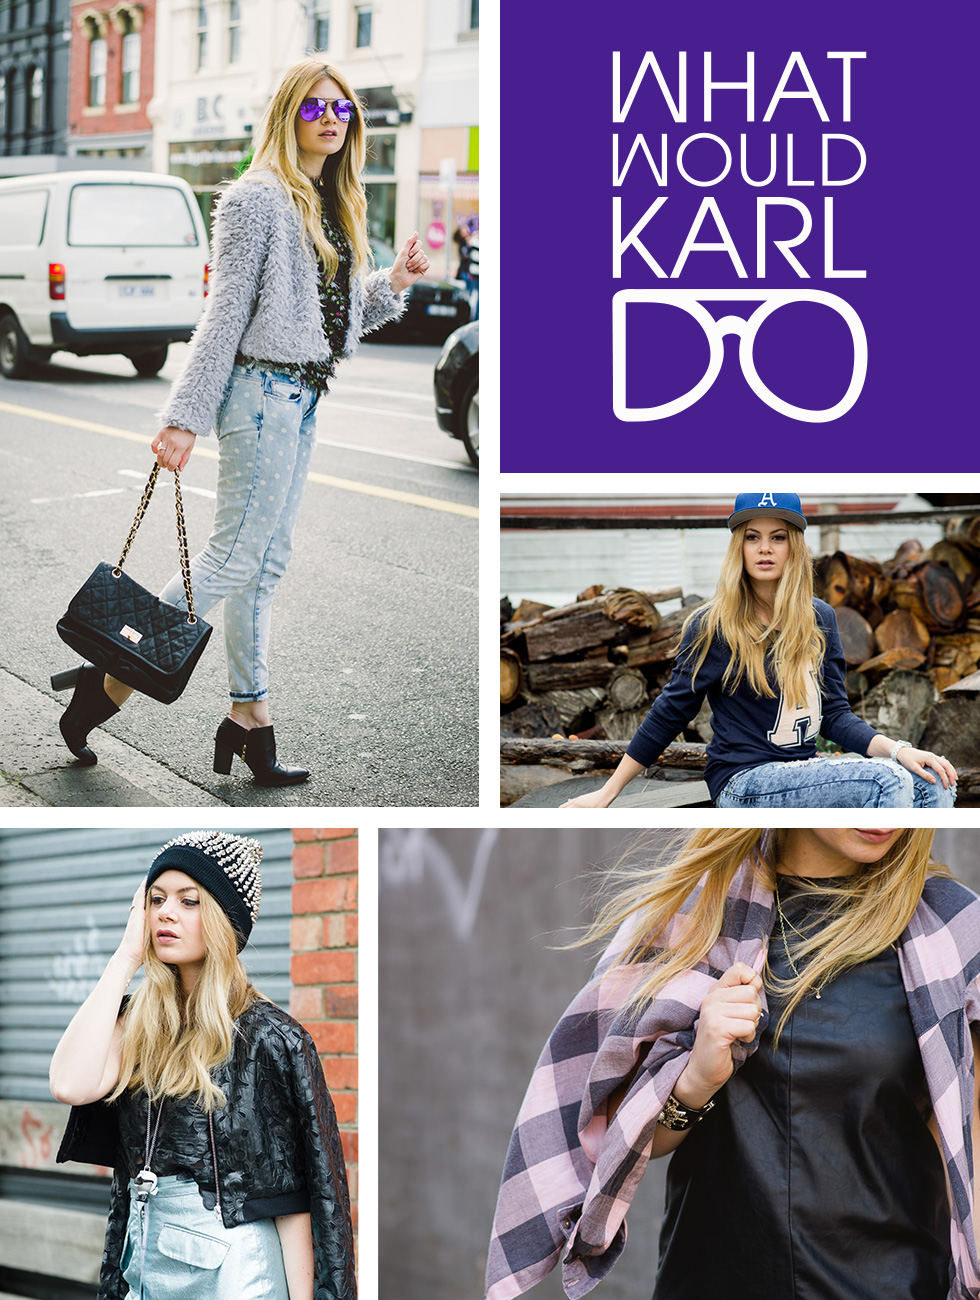 blogger, fashion, street style, what would karl do, jess dempsey